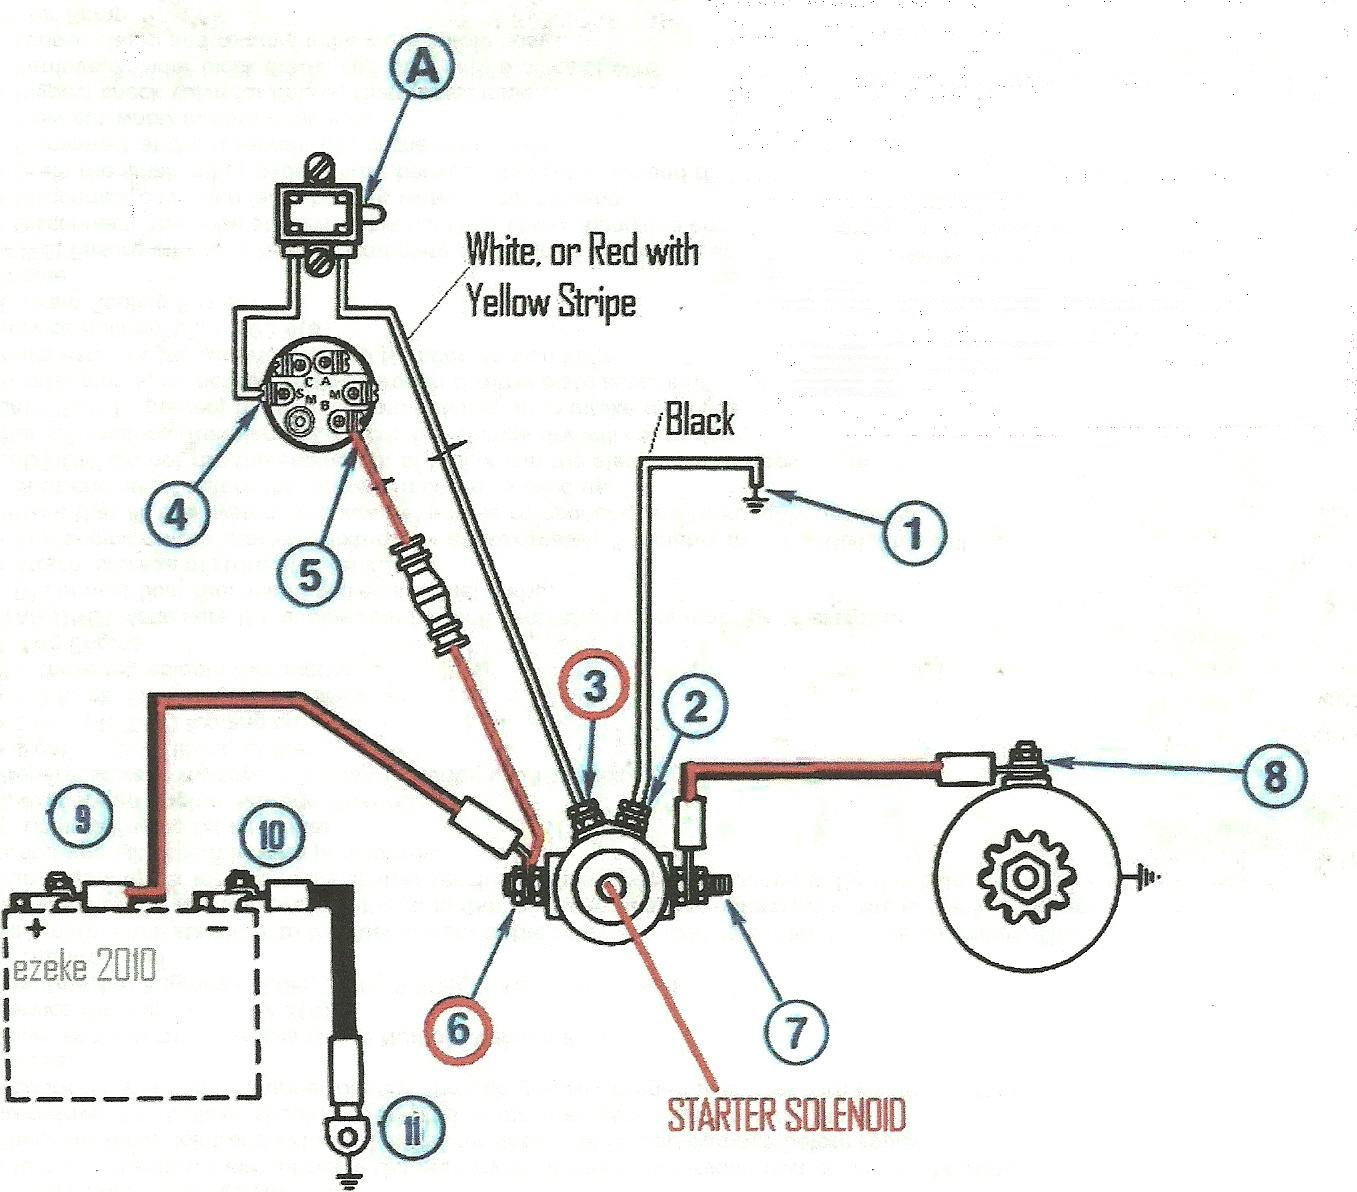 L118 Wiring Diagram | Wiring Library - Ford F250 Starter Solenoid Wiring Diagram